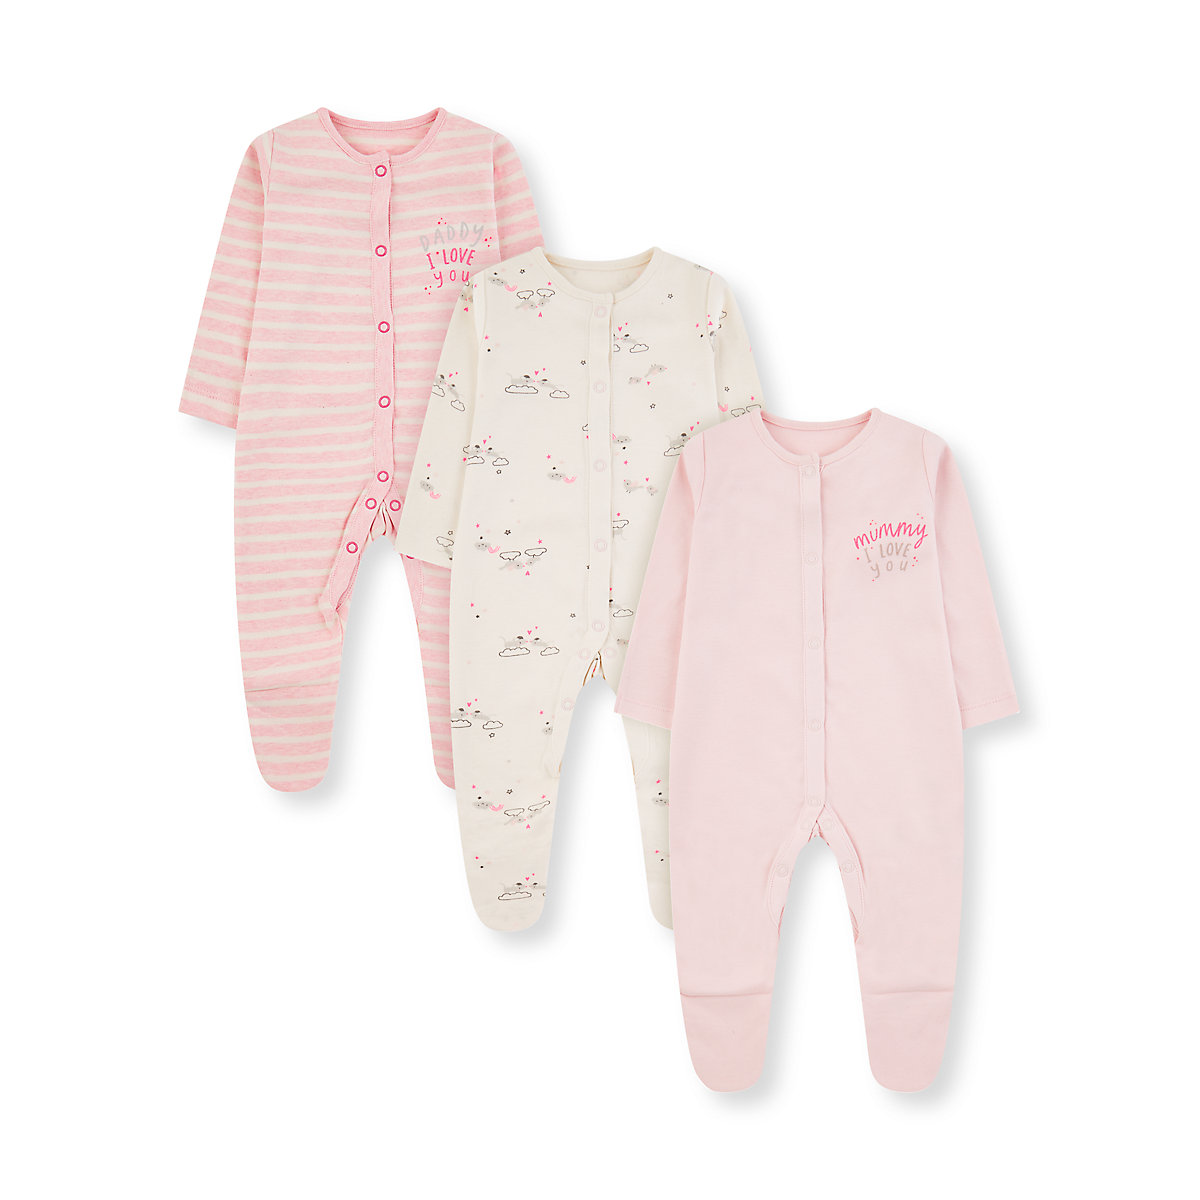 pink mummy and daddy mouse sleepsuits - 3 pack